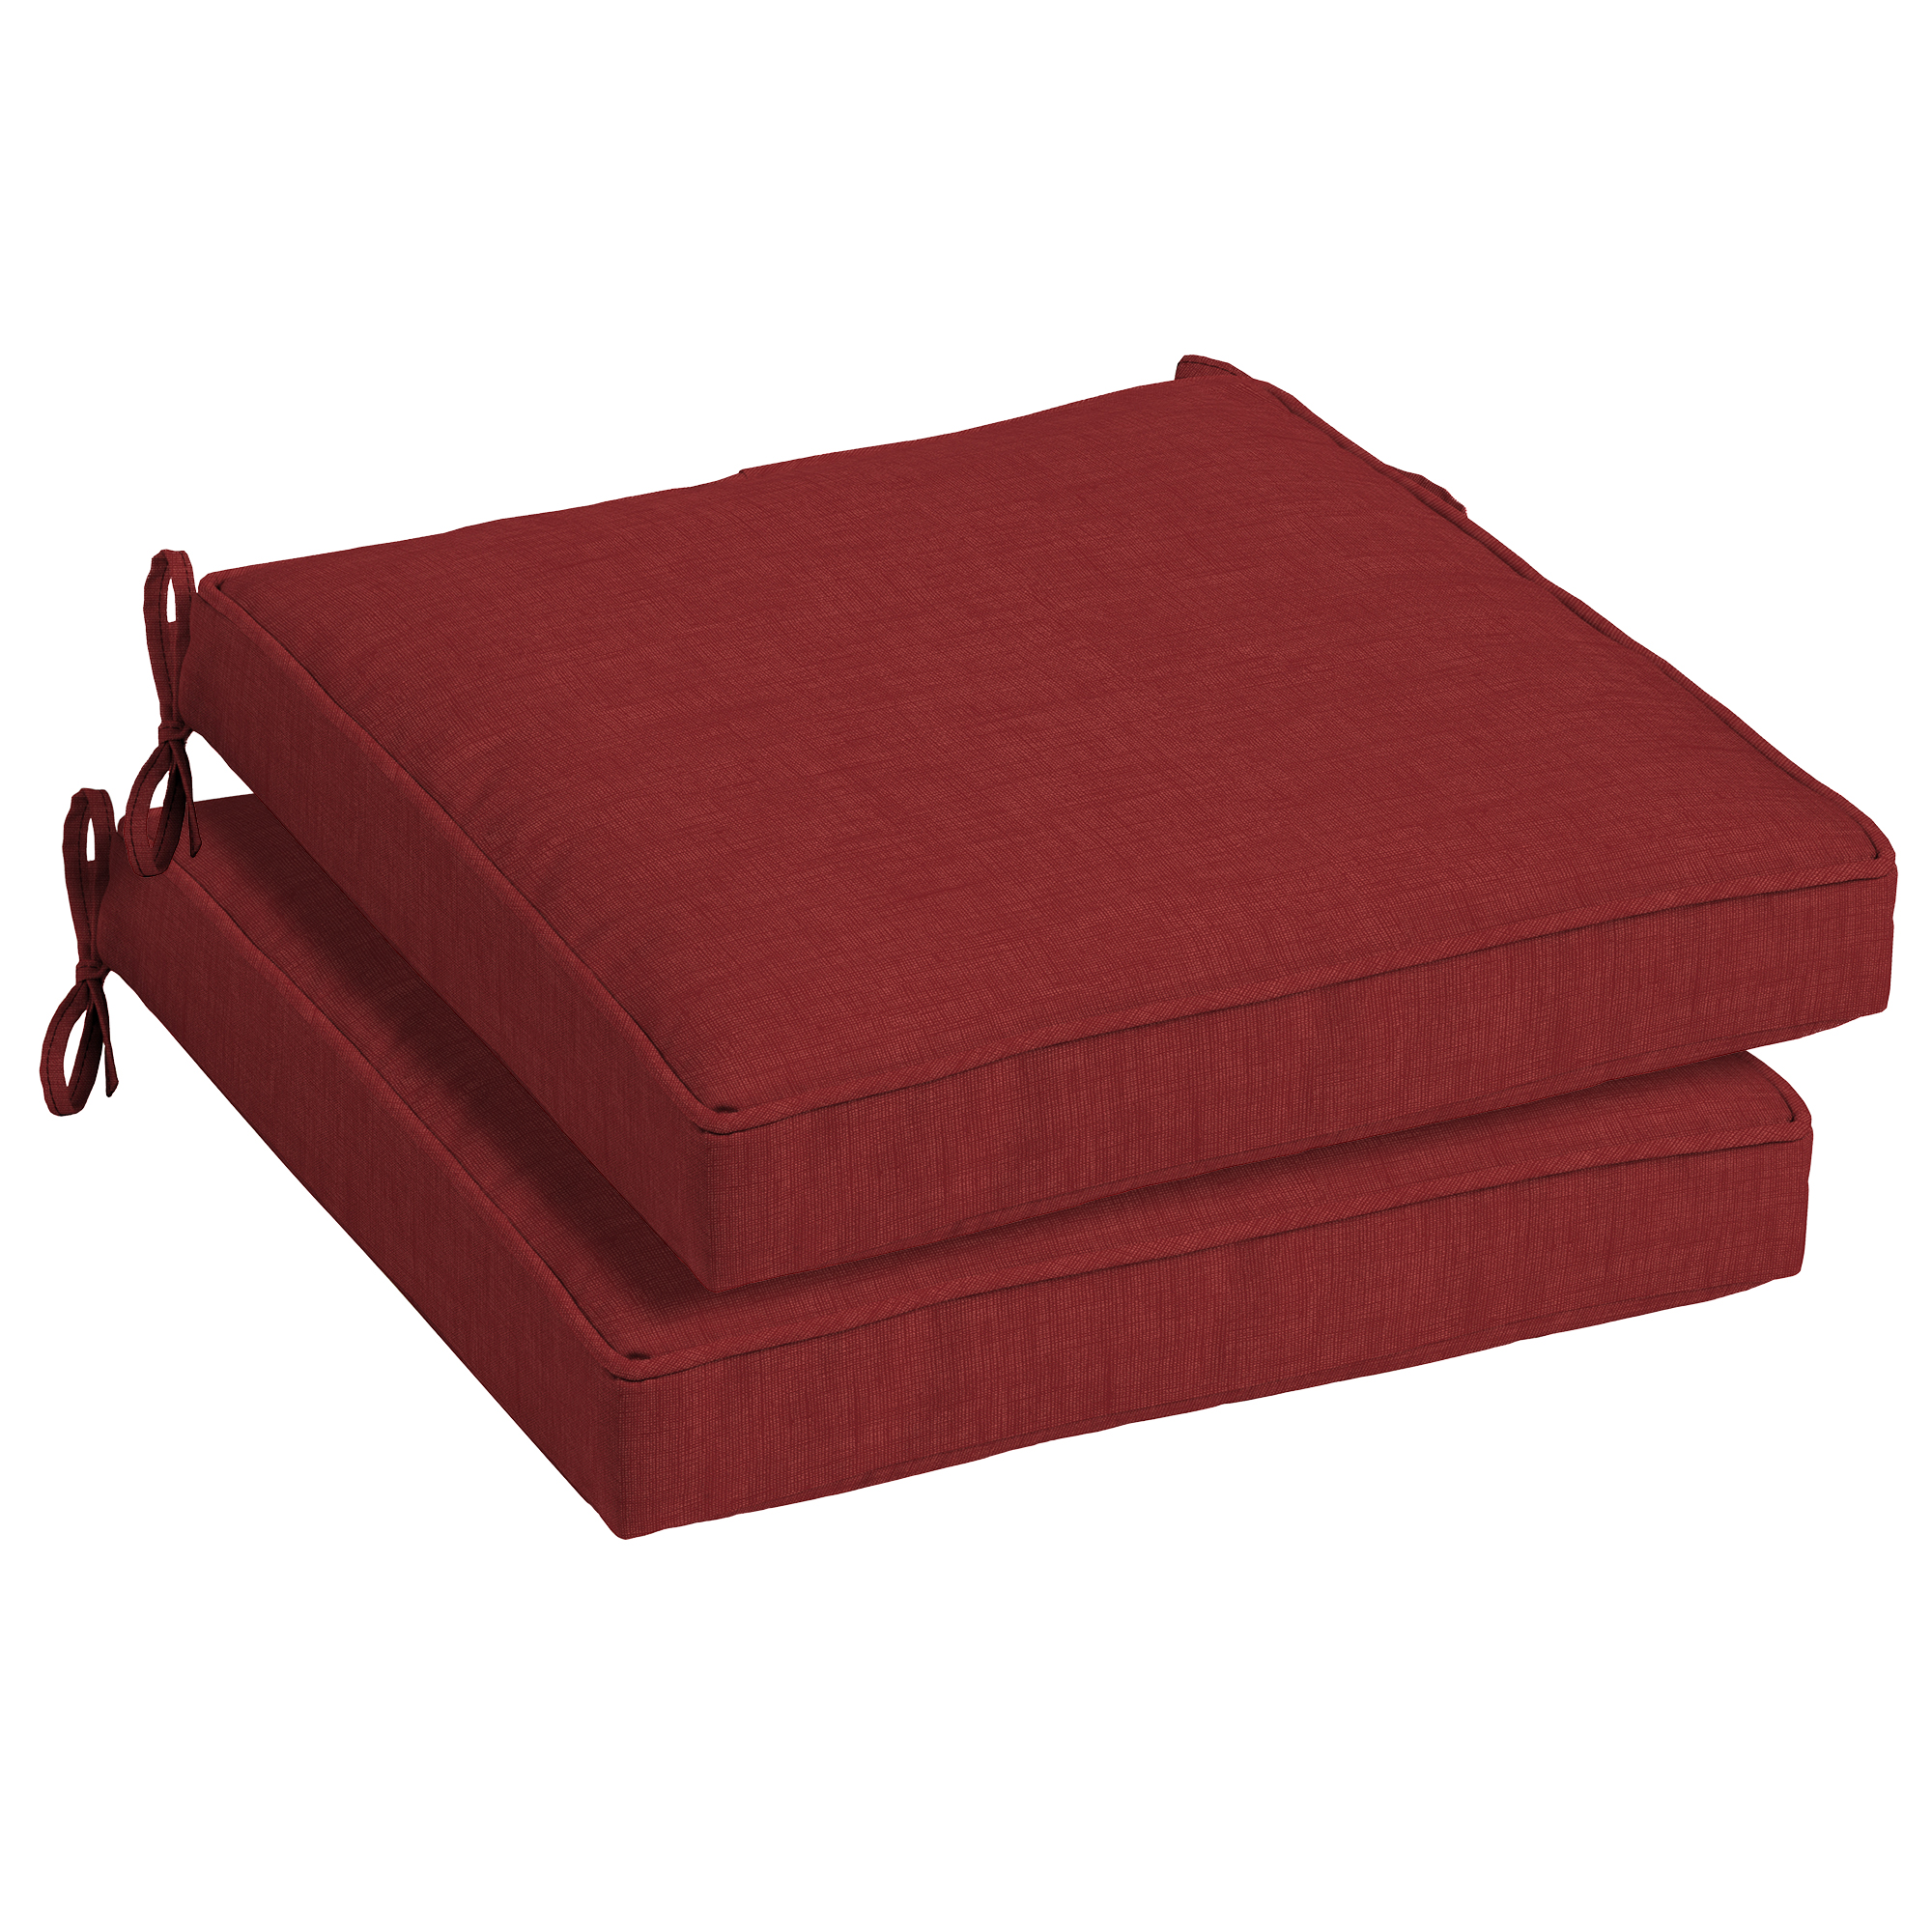 Arden Selections Ruby Leala 21 x 21 in. Outdoor Dining Seat Cushion, Set of 2